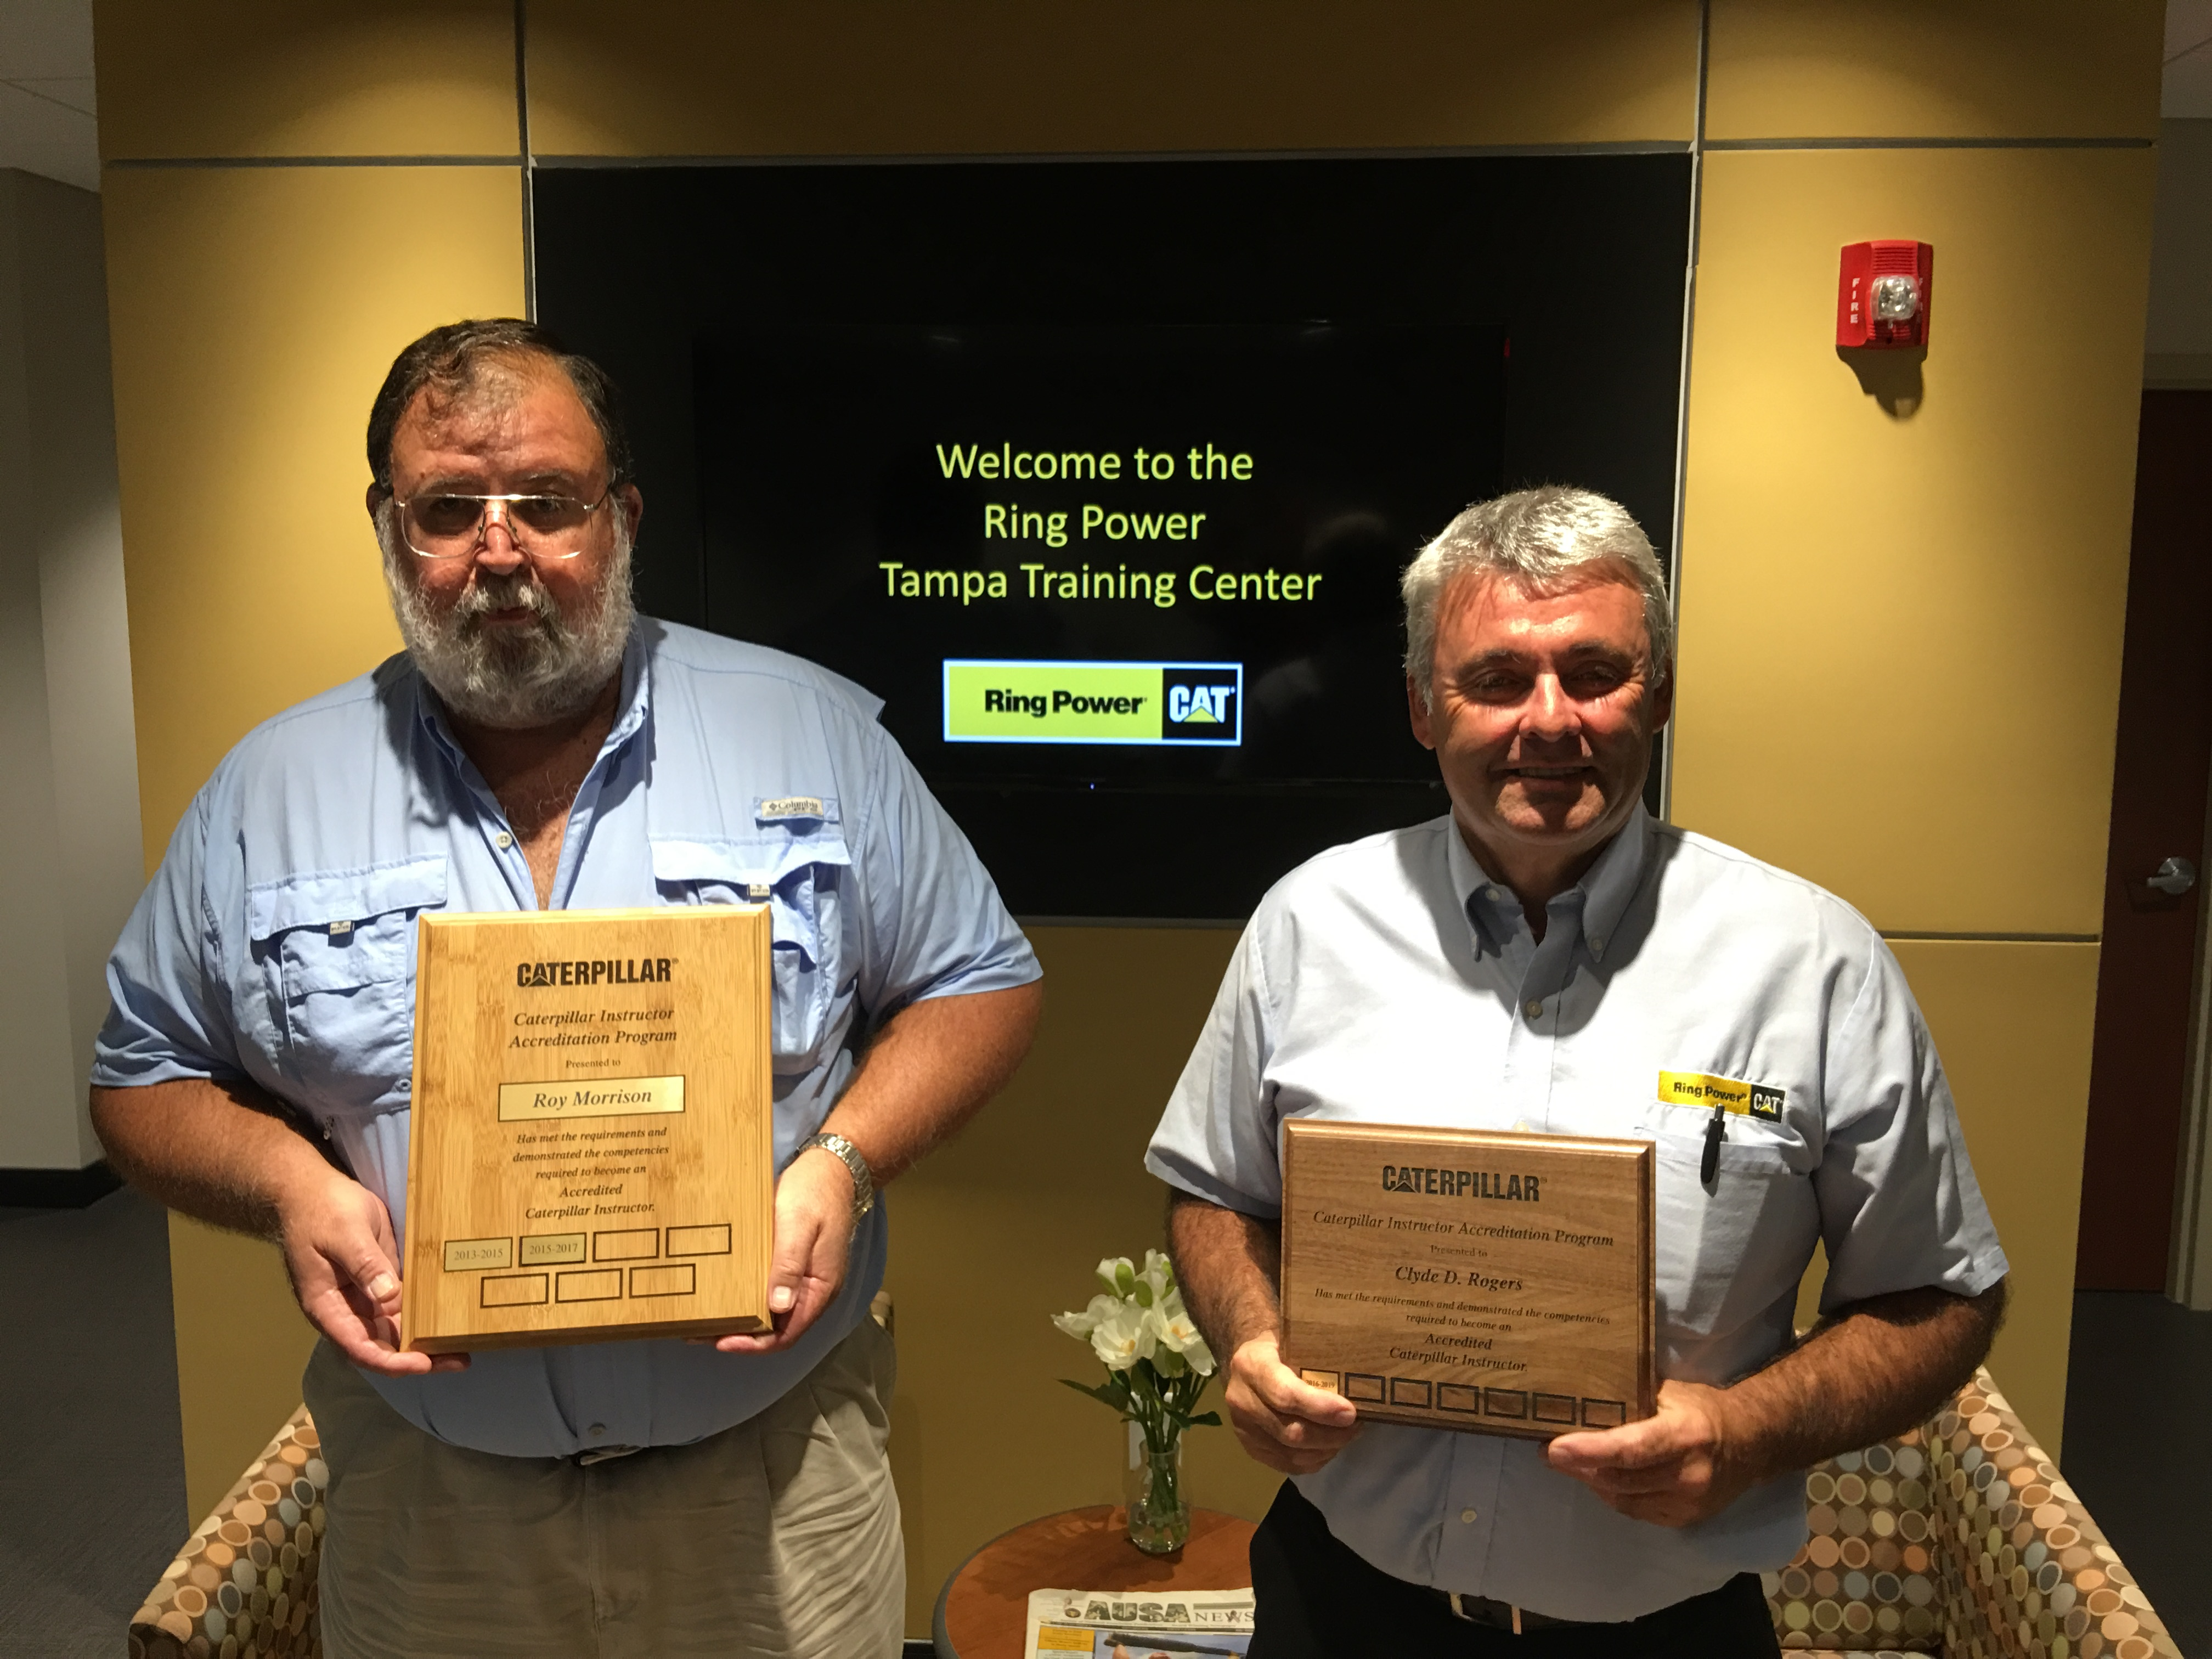 Roy Morrison (left) and Clyde Rogers with their CIAP Certification plaques